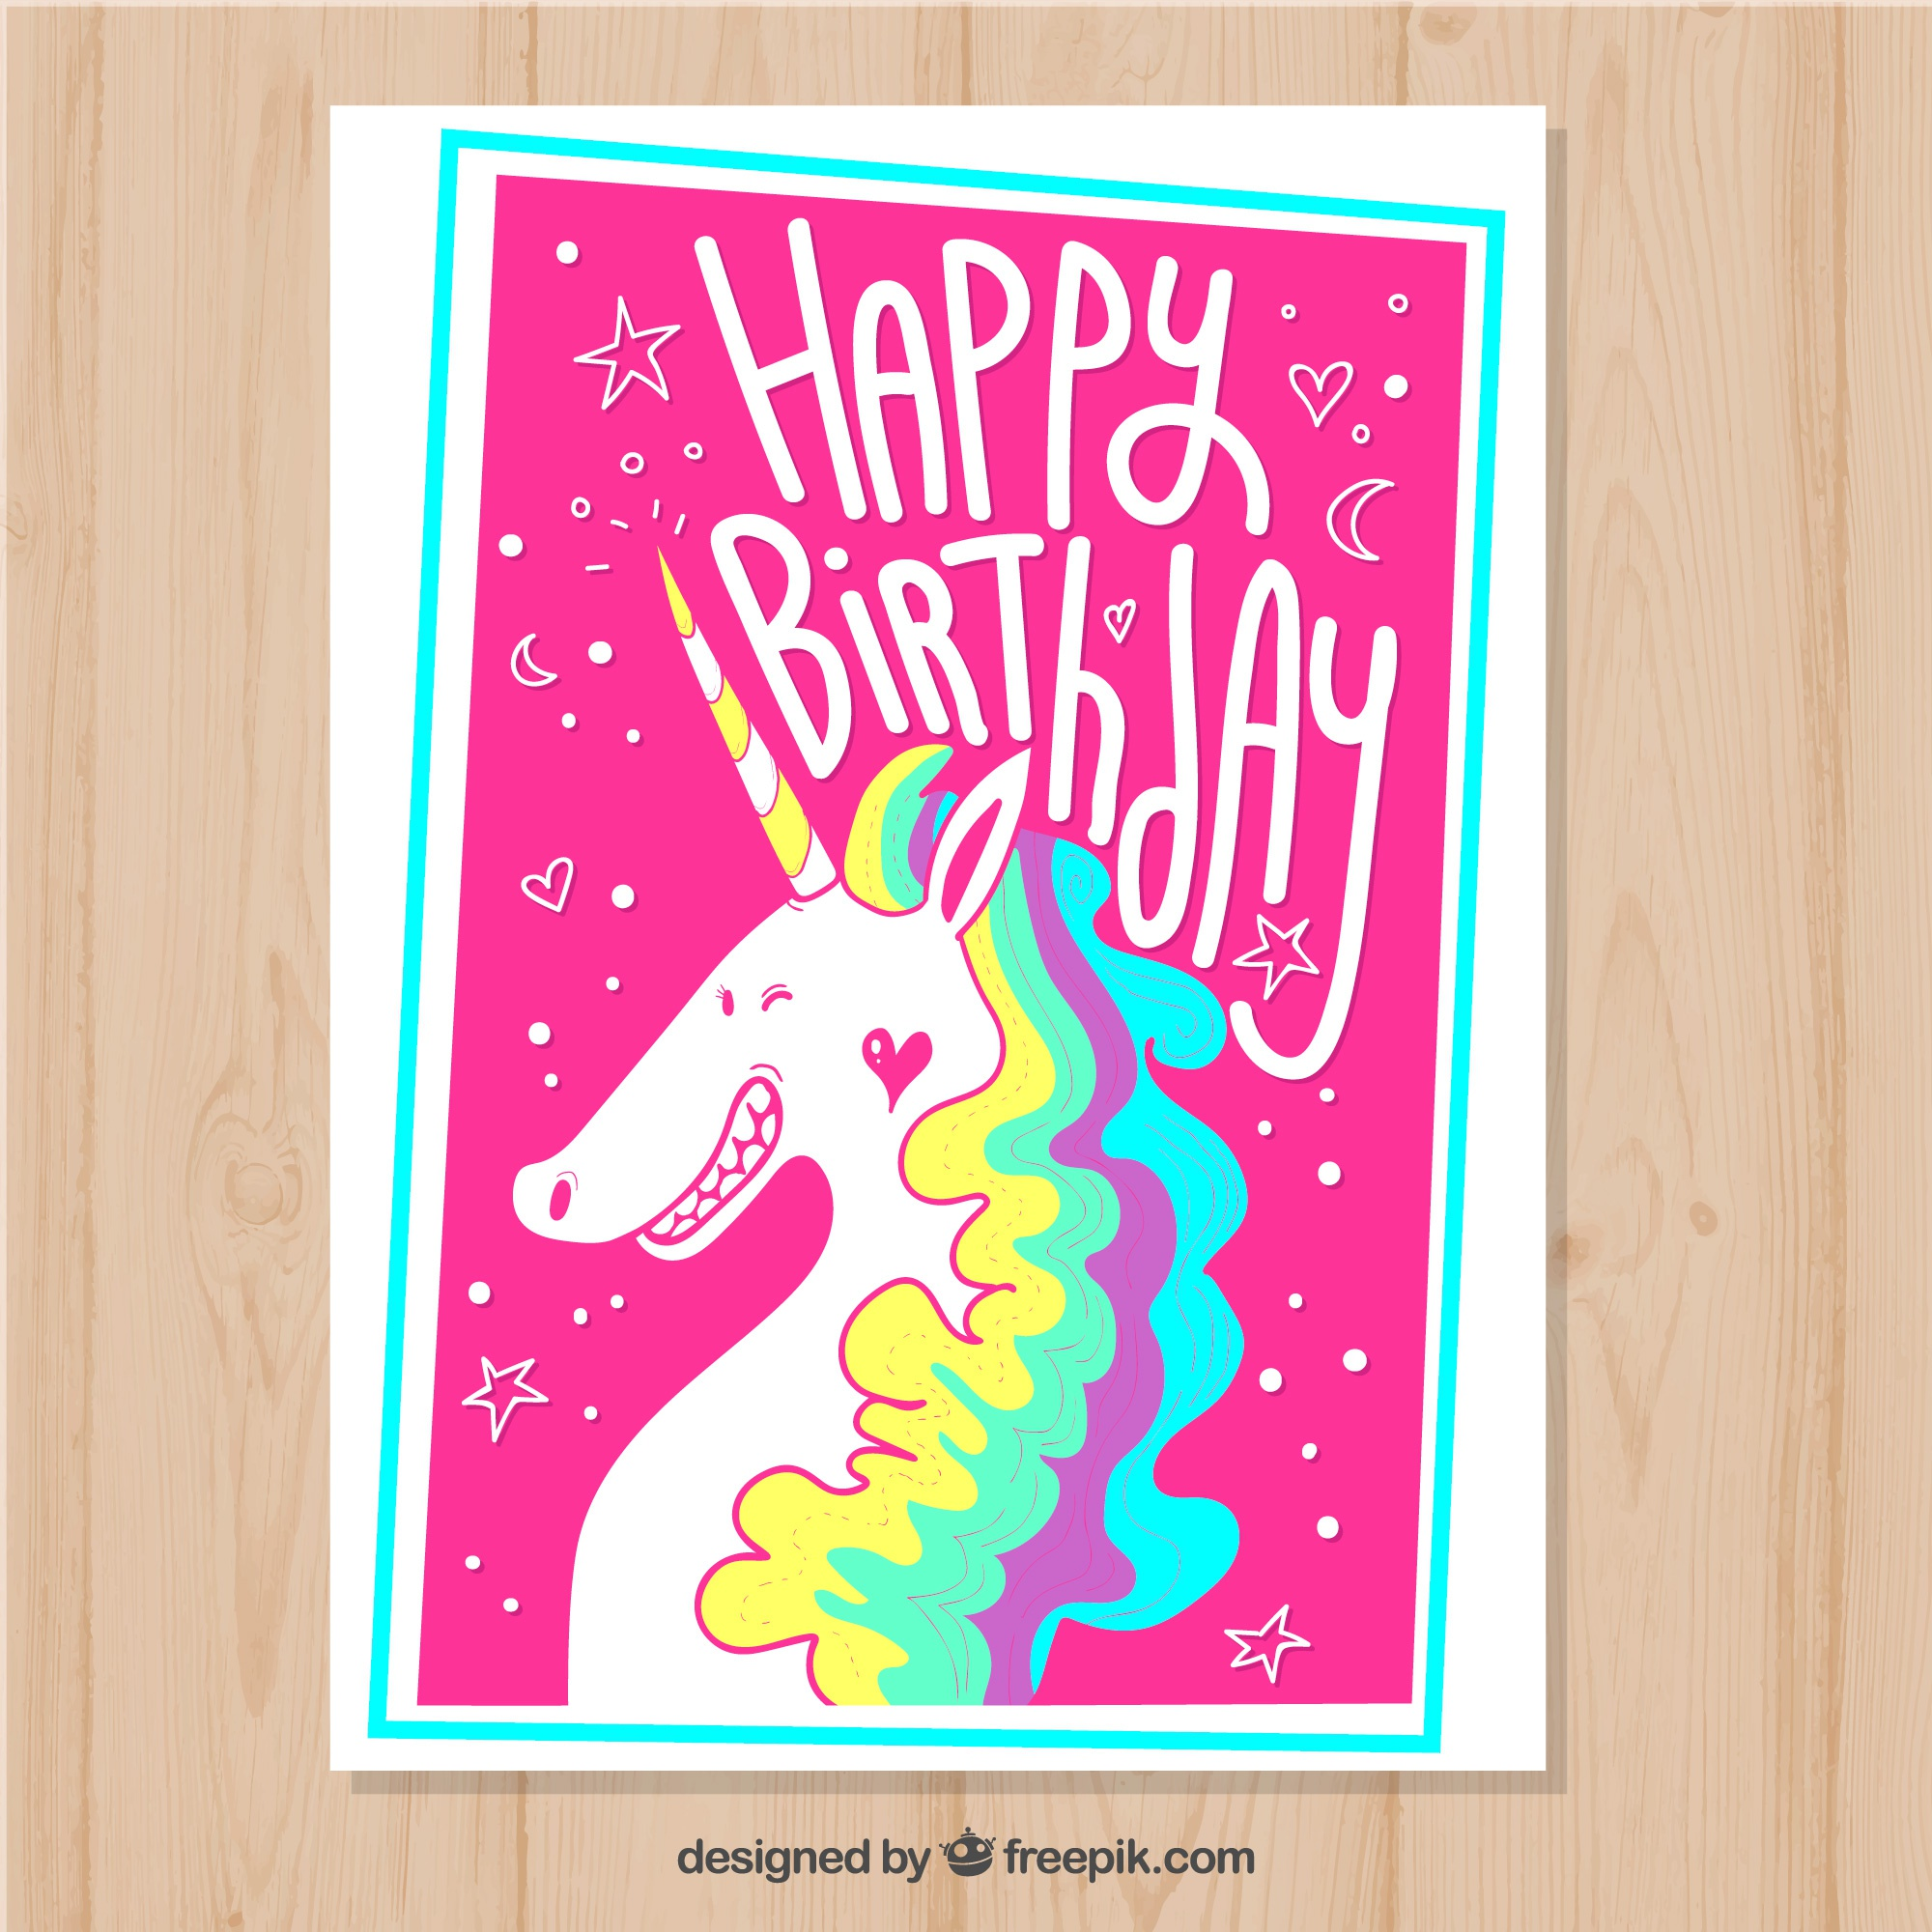 Happy birthday, pink card with a unicorn